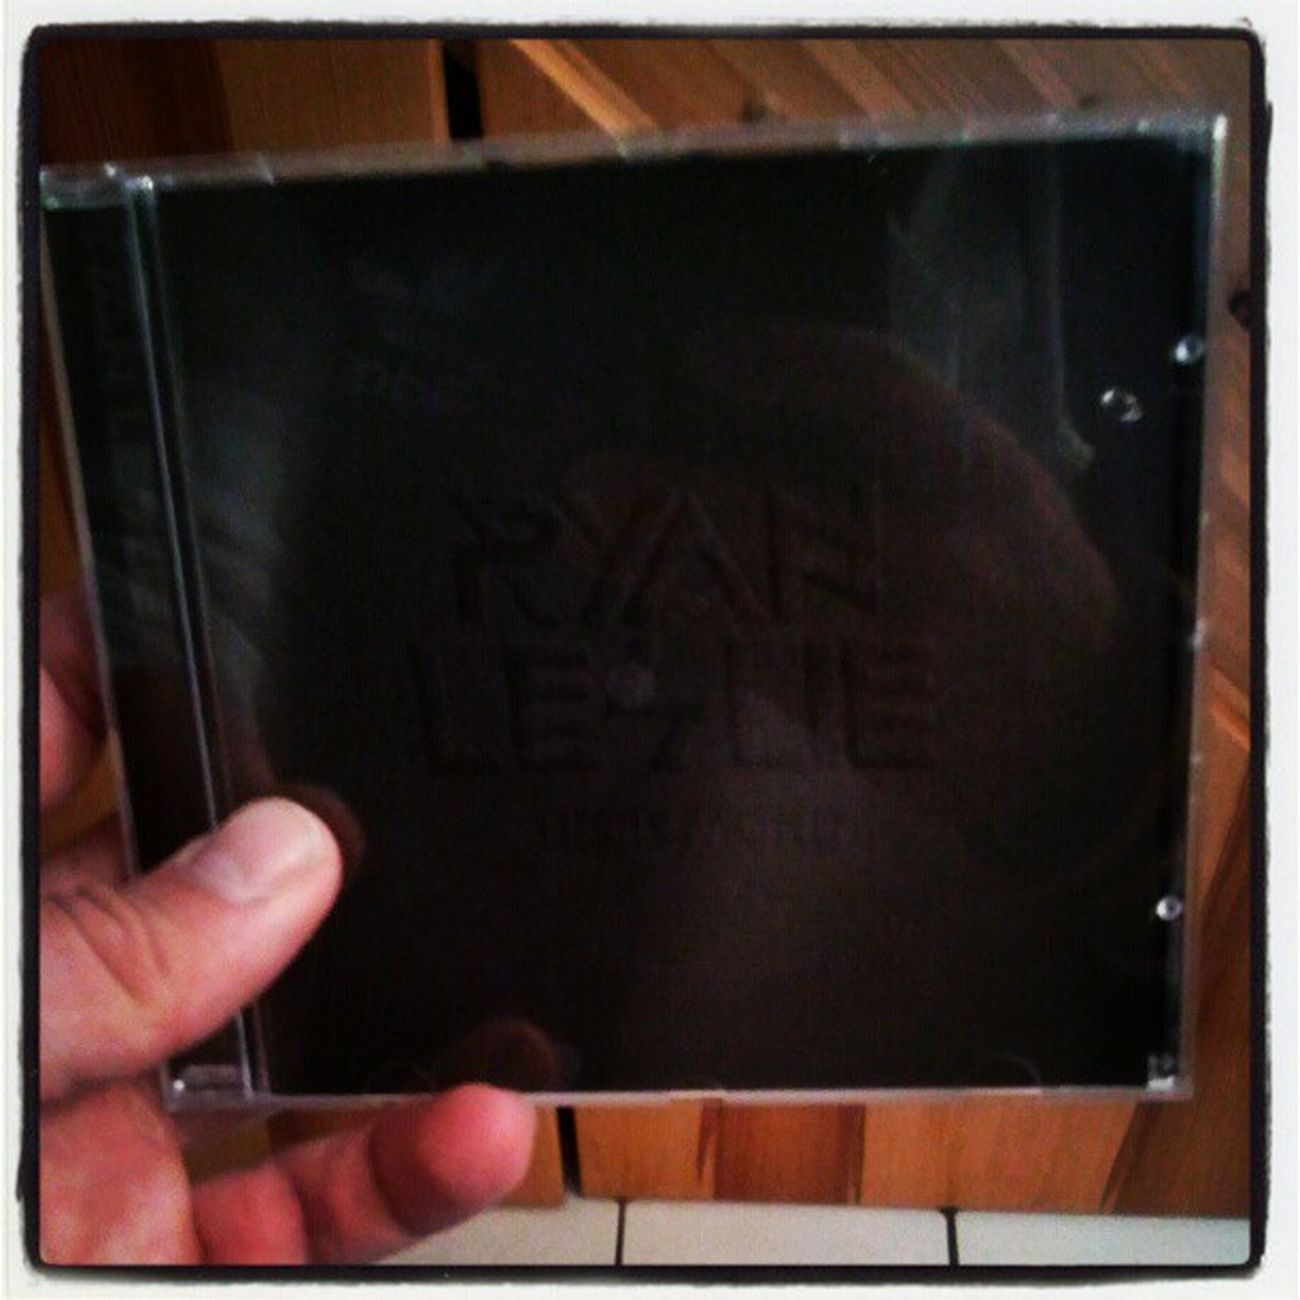 I have got it! Rles Lesismore Ryanleslie Nextselection